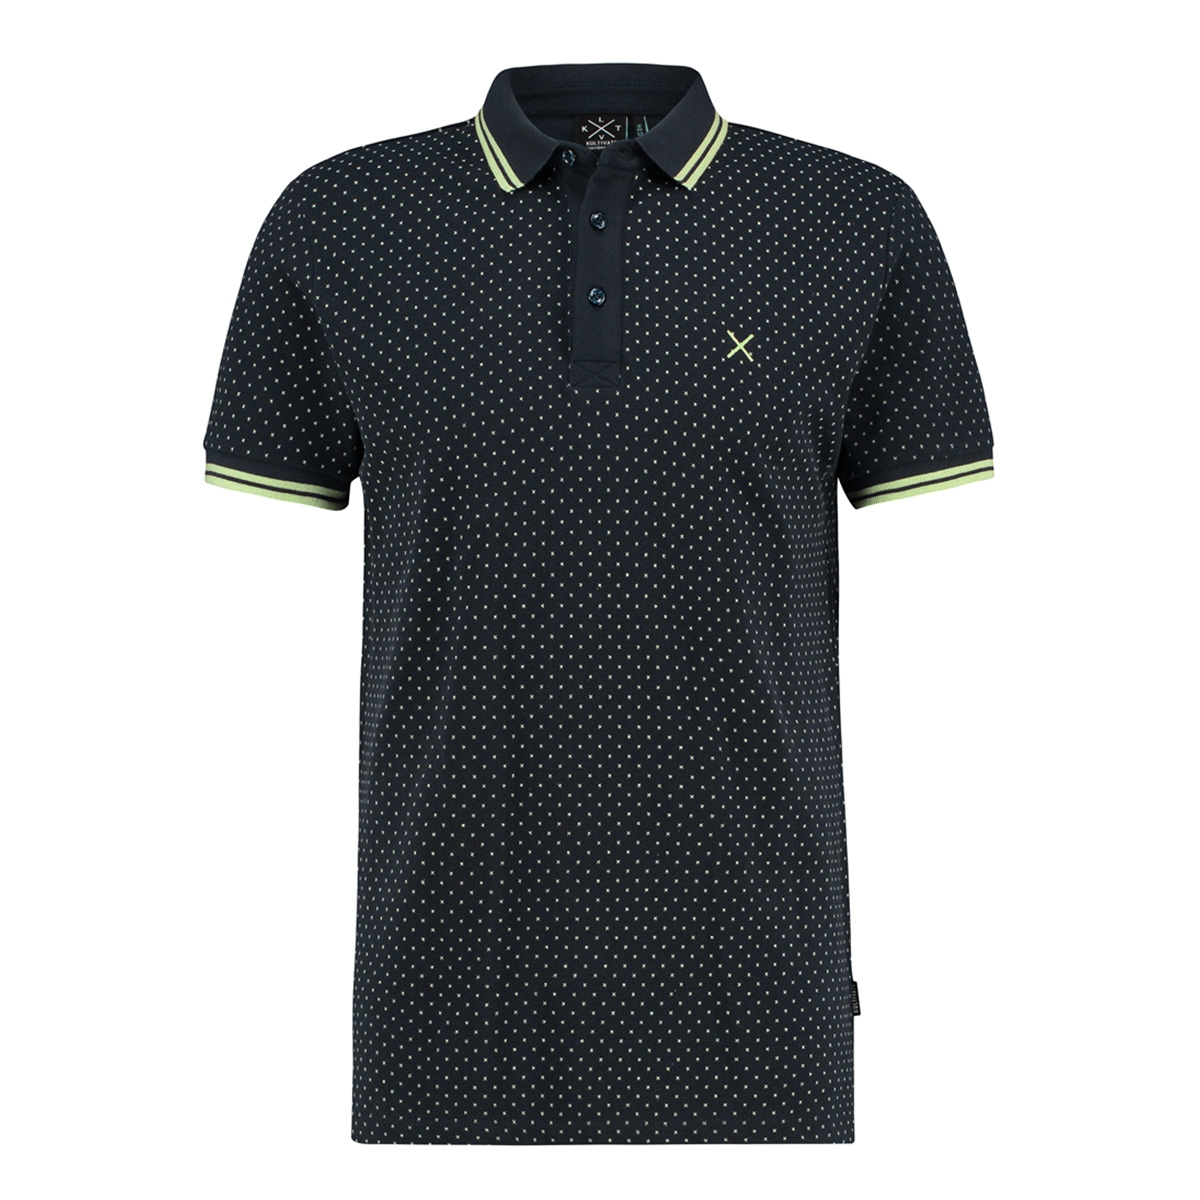 pl lime cross 1901030400 kultivate polo 319 dark navy